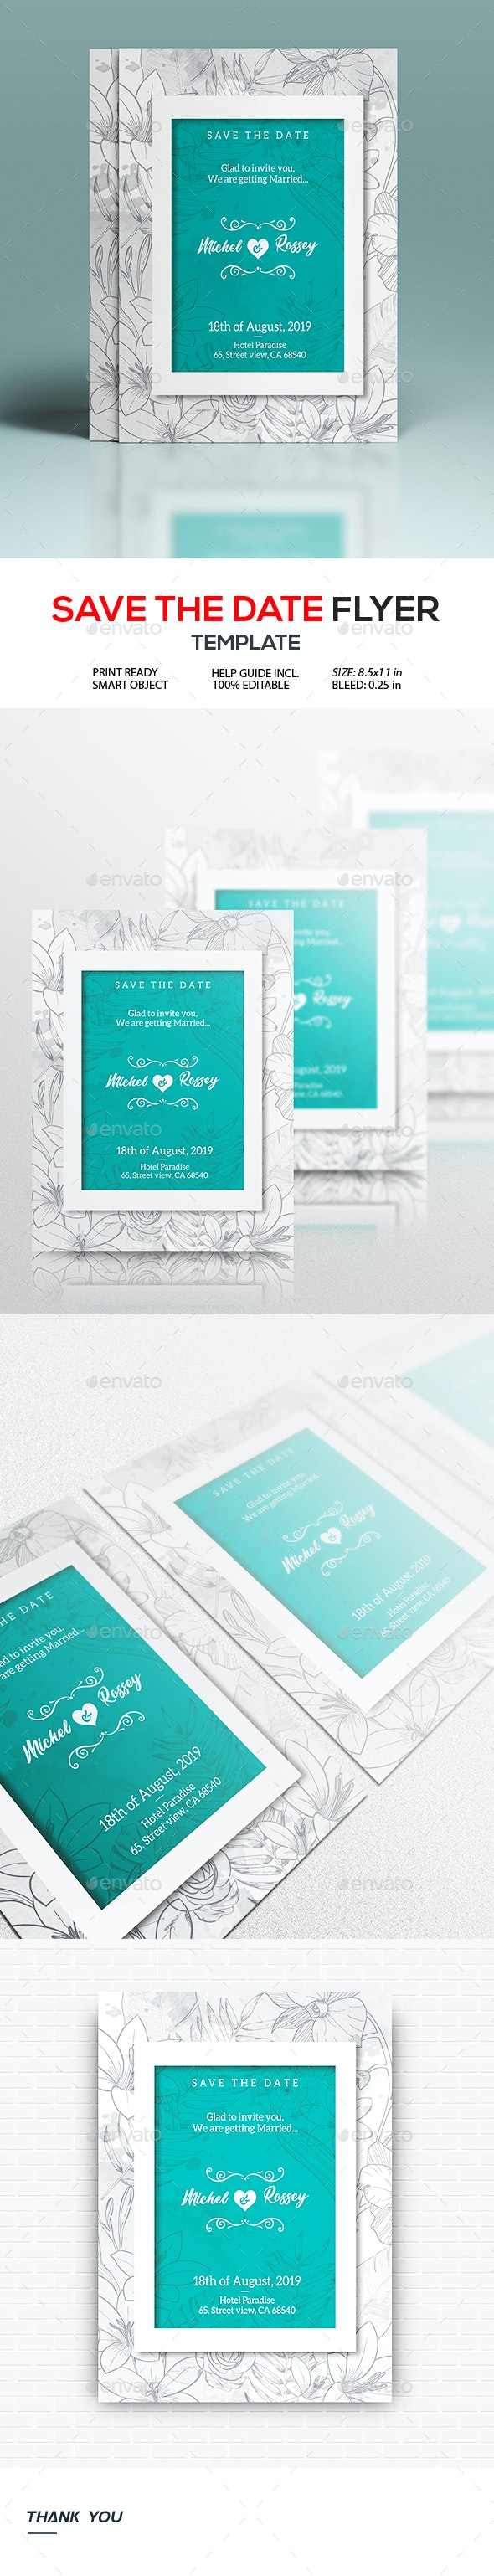 Wedding Invitation and Save The Date Flyer - Invitations Cards & Invites